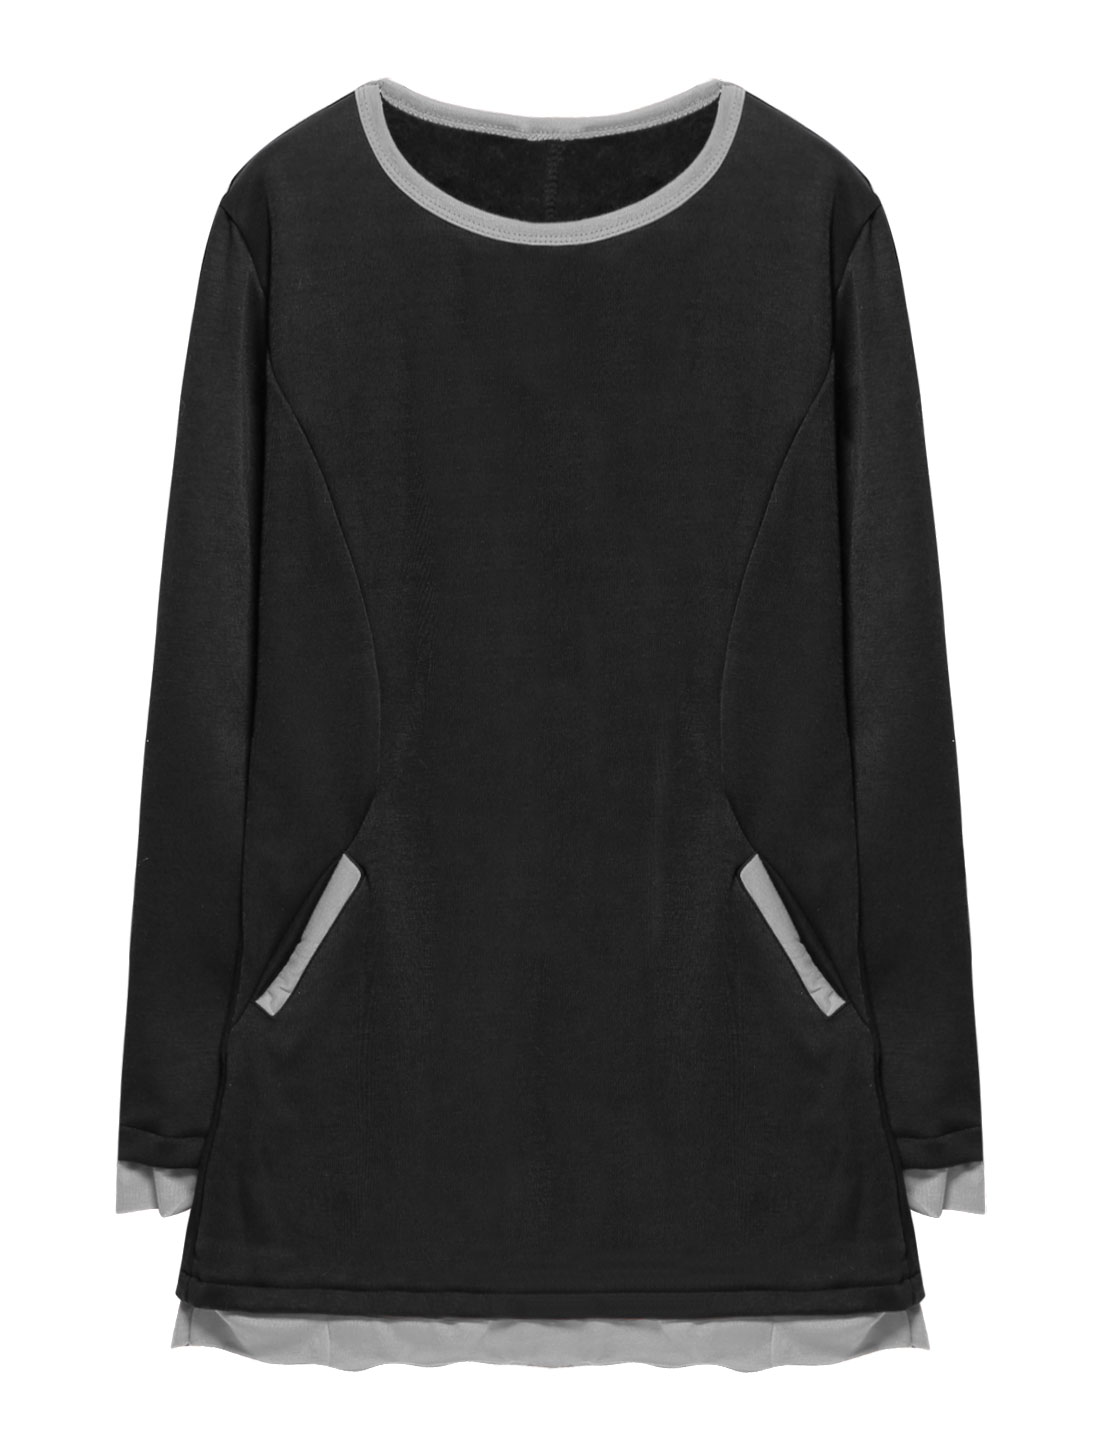 Woman Long Sleeves Layered Soft Lining Tunic Top Black XS